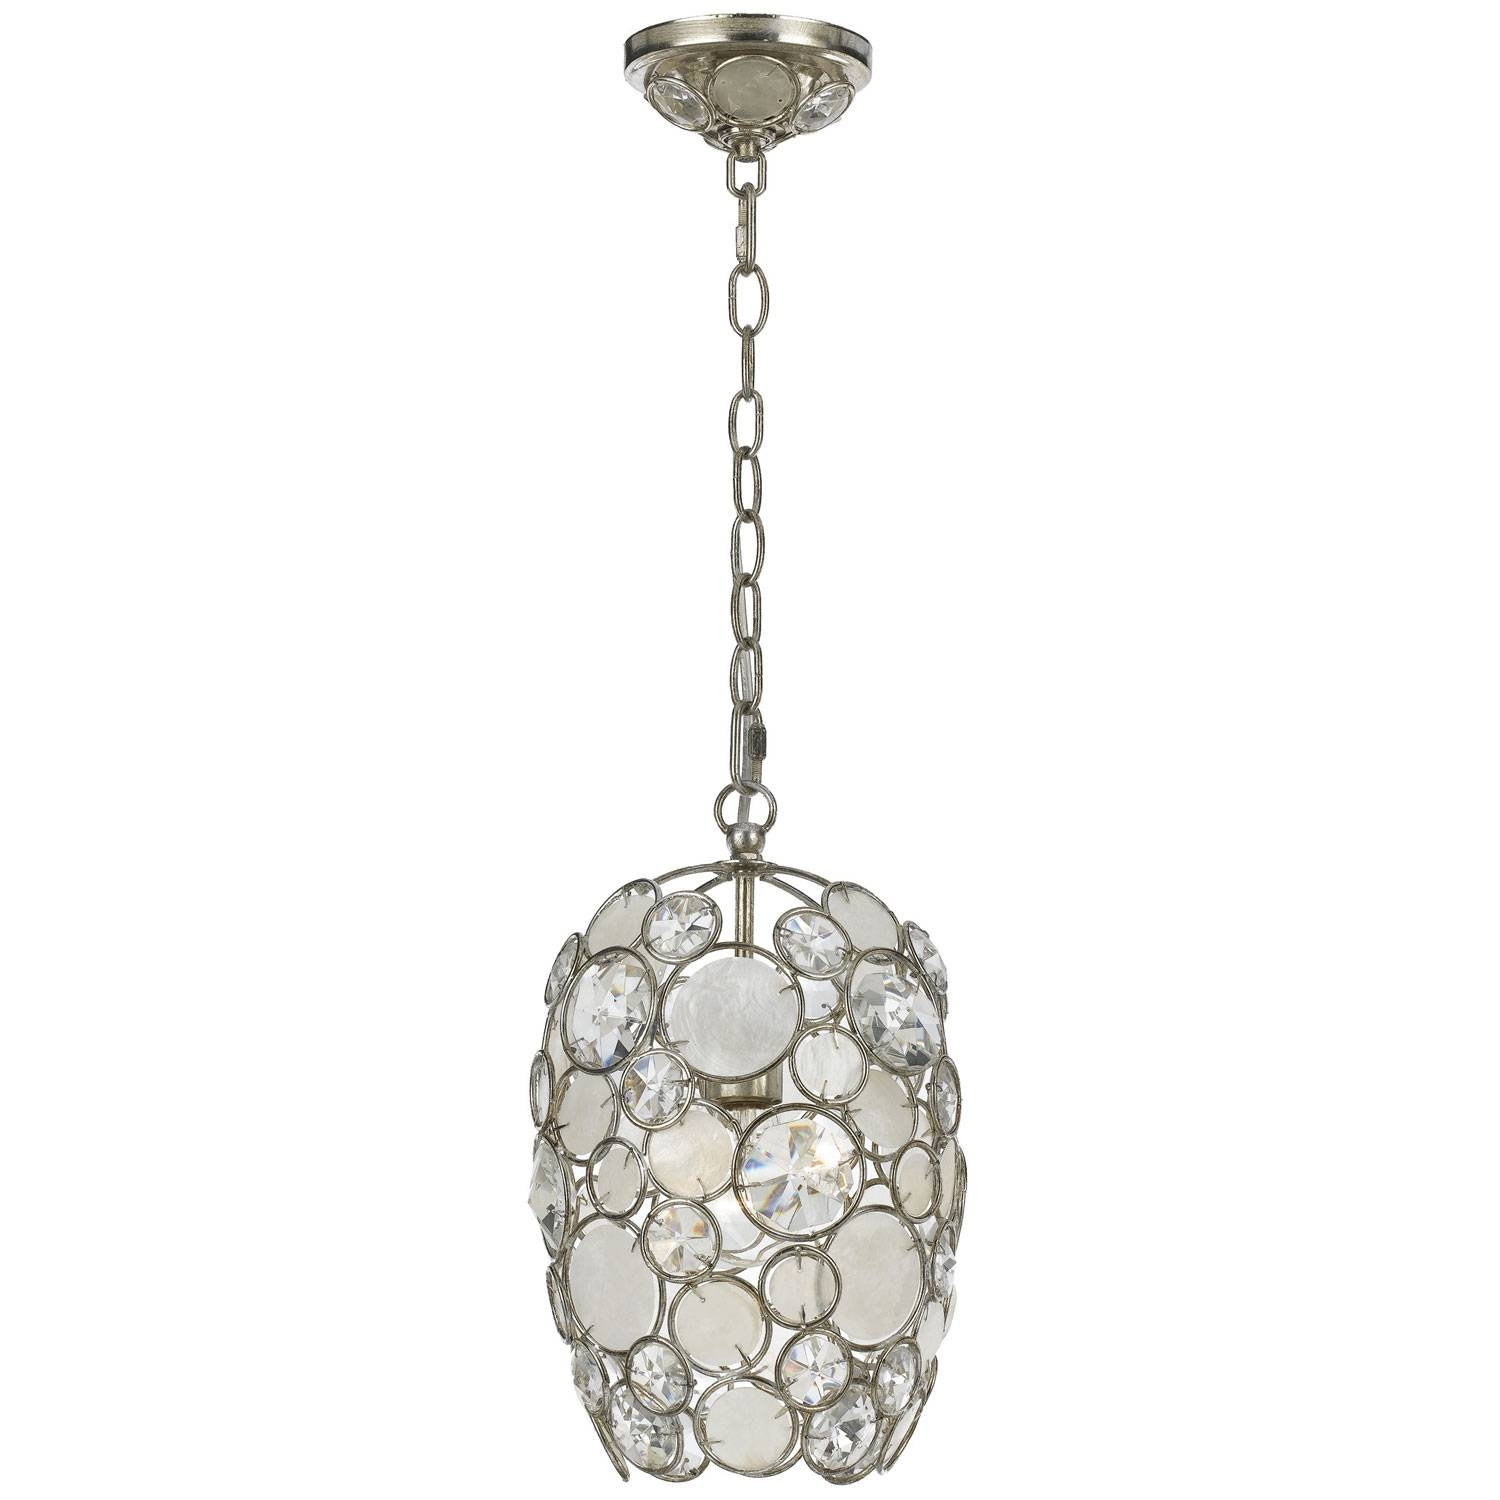 Ceiling Lights & Lighting Fixtures | Modern, Flush Mount for Shell Lights Shades Pendants (Image 2 of 15)